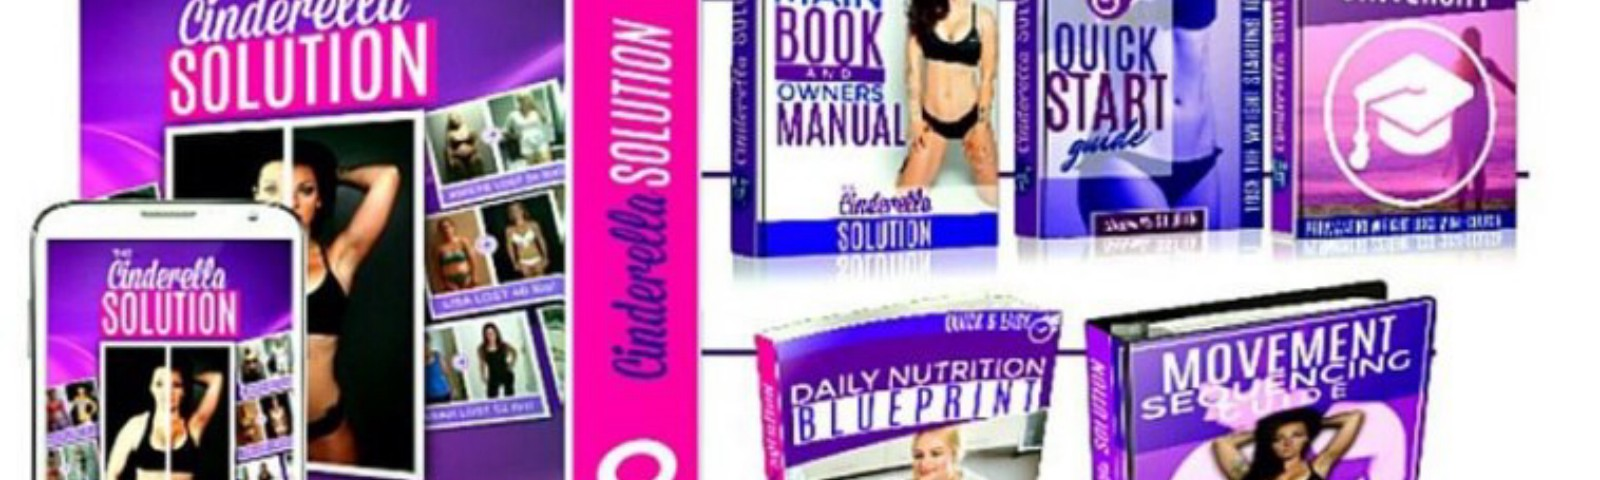 Buy Cinderella Solution Diet  Store Availability